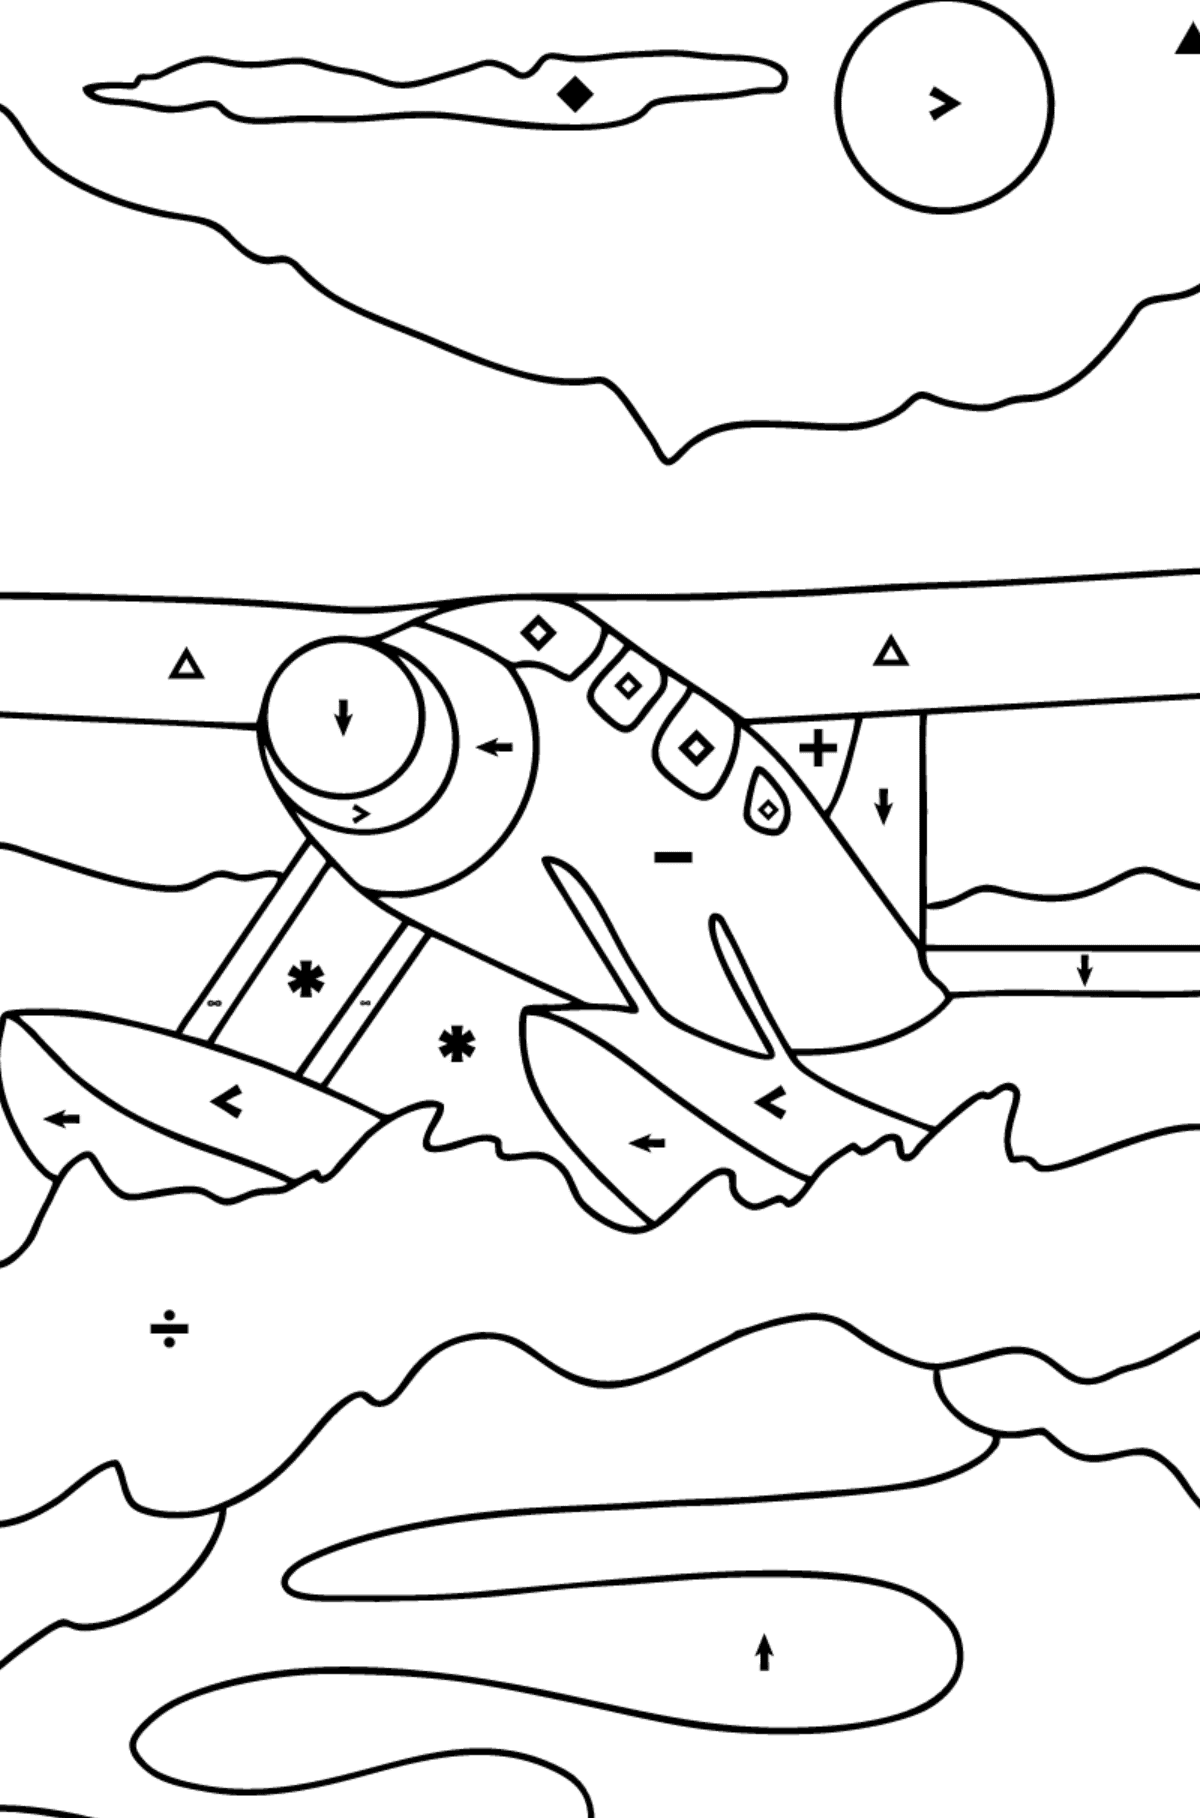 Coloring Page - A Hydroplane - Coloring by Symbols for Kids